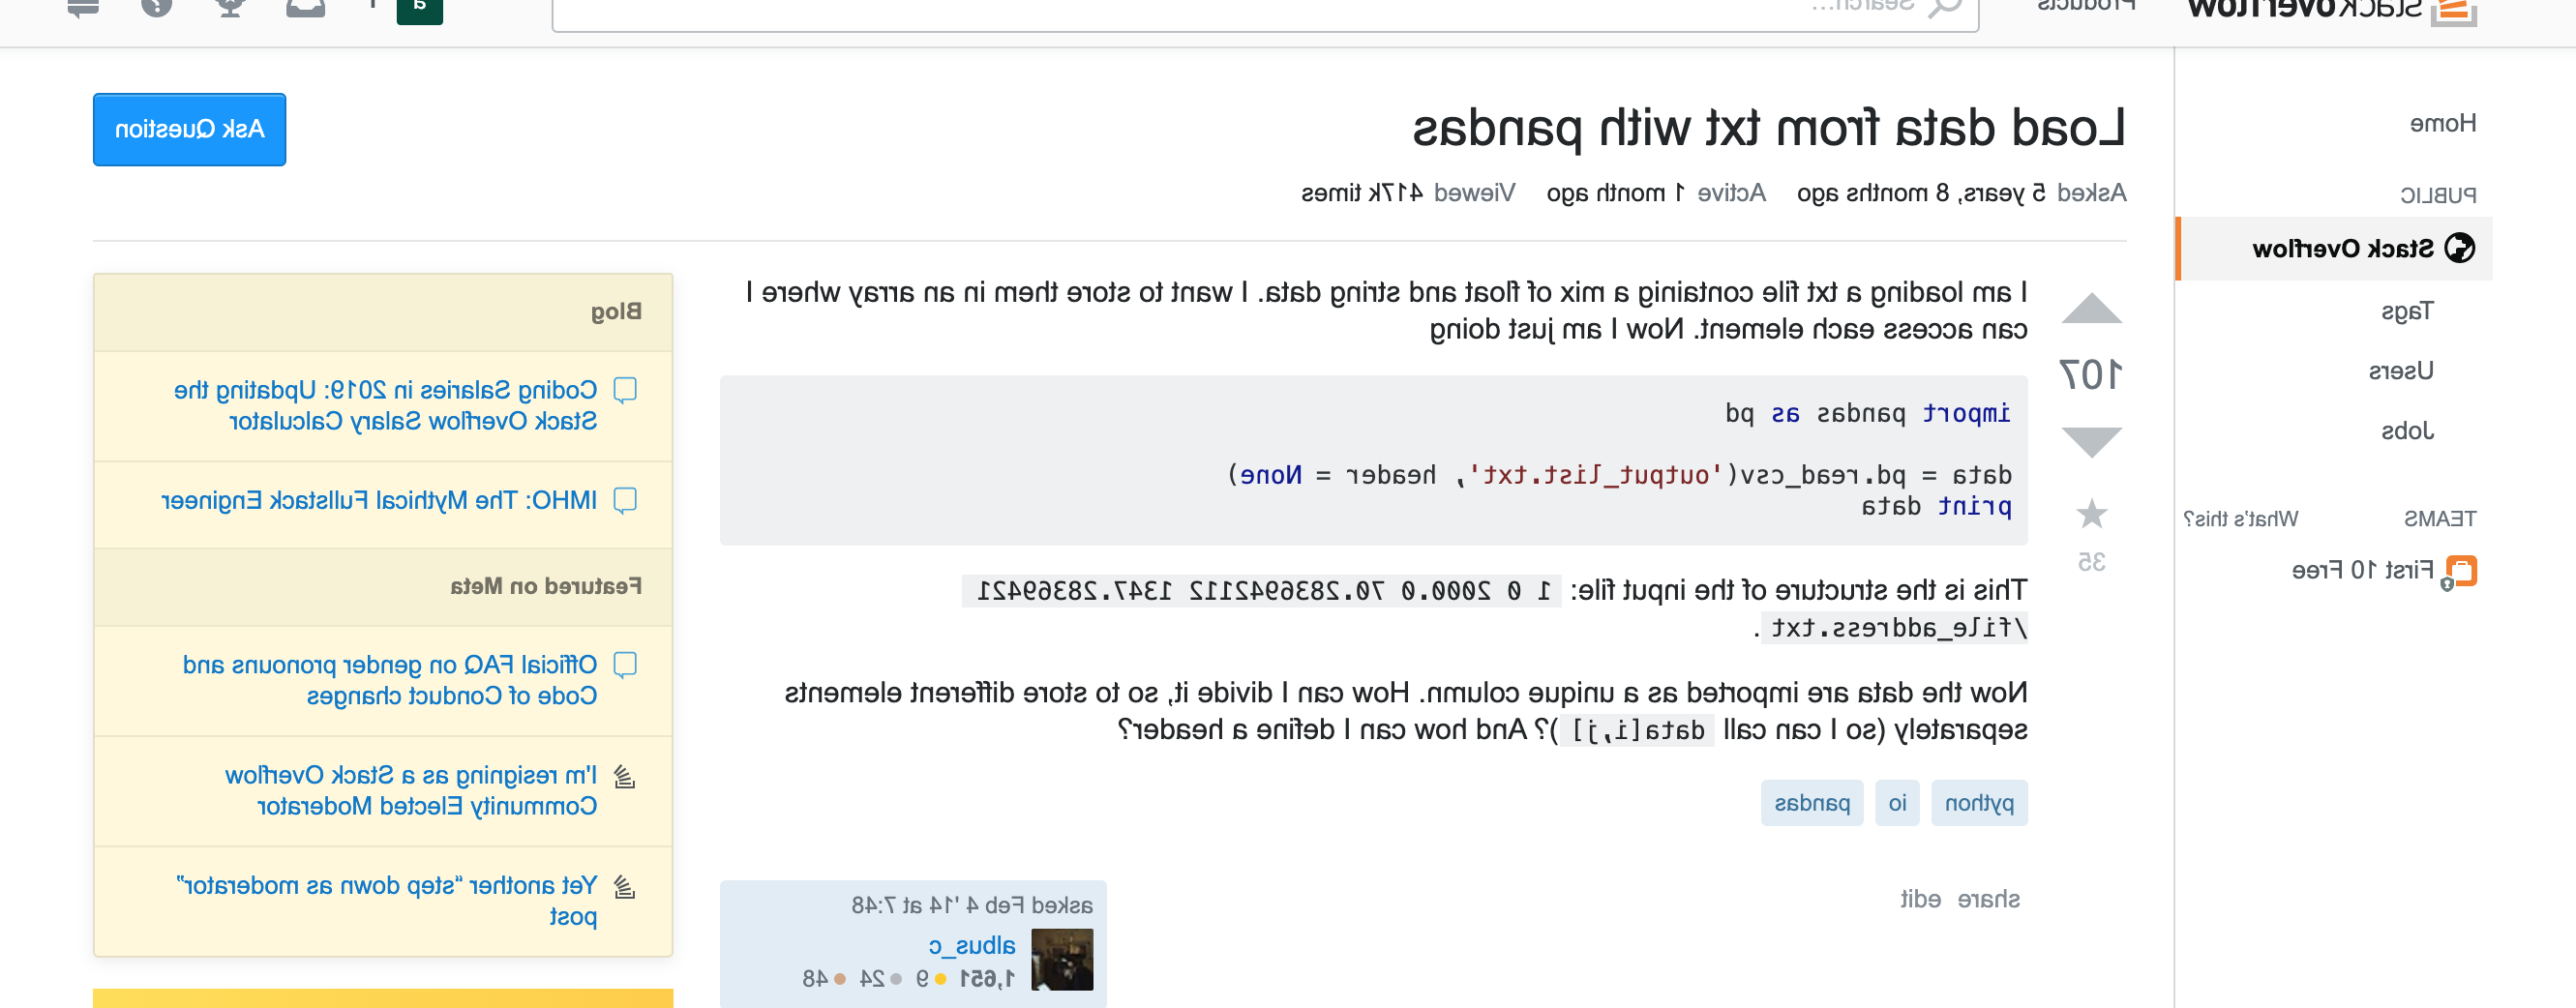 Can I advertise on stack overflow?